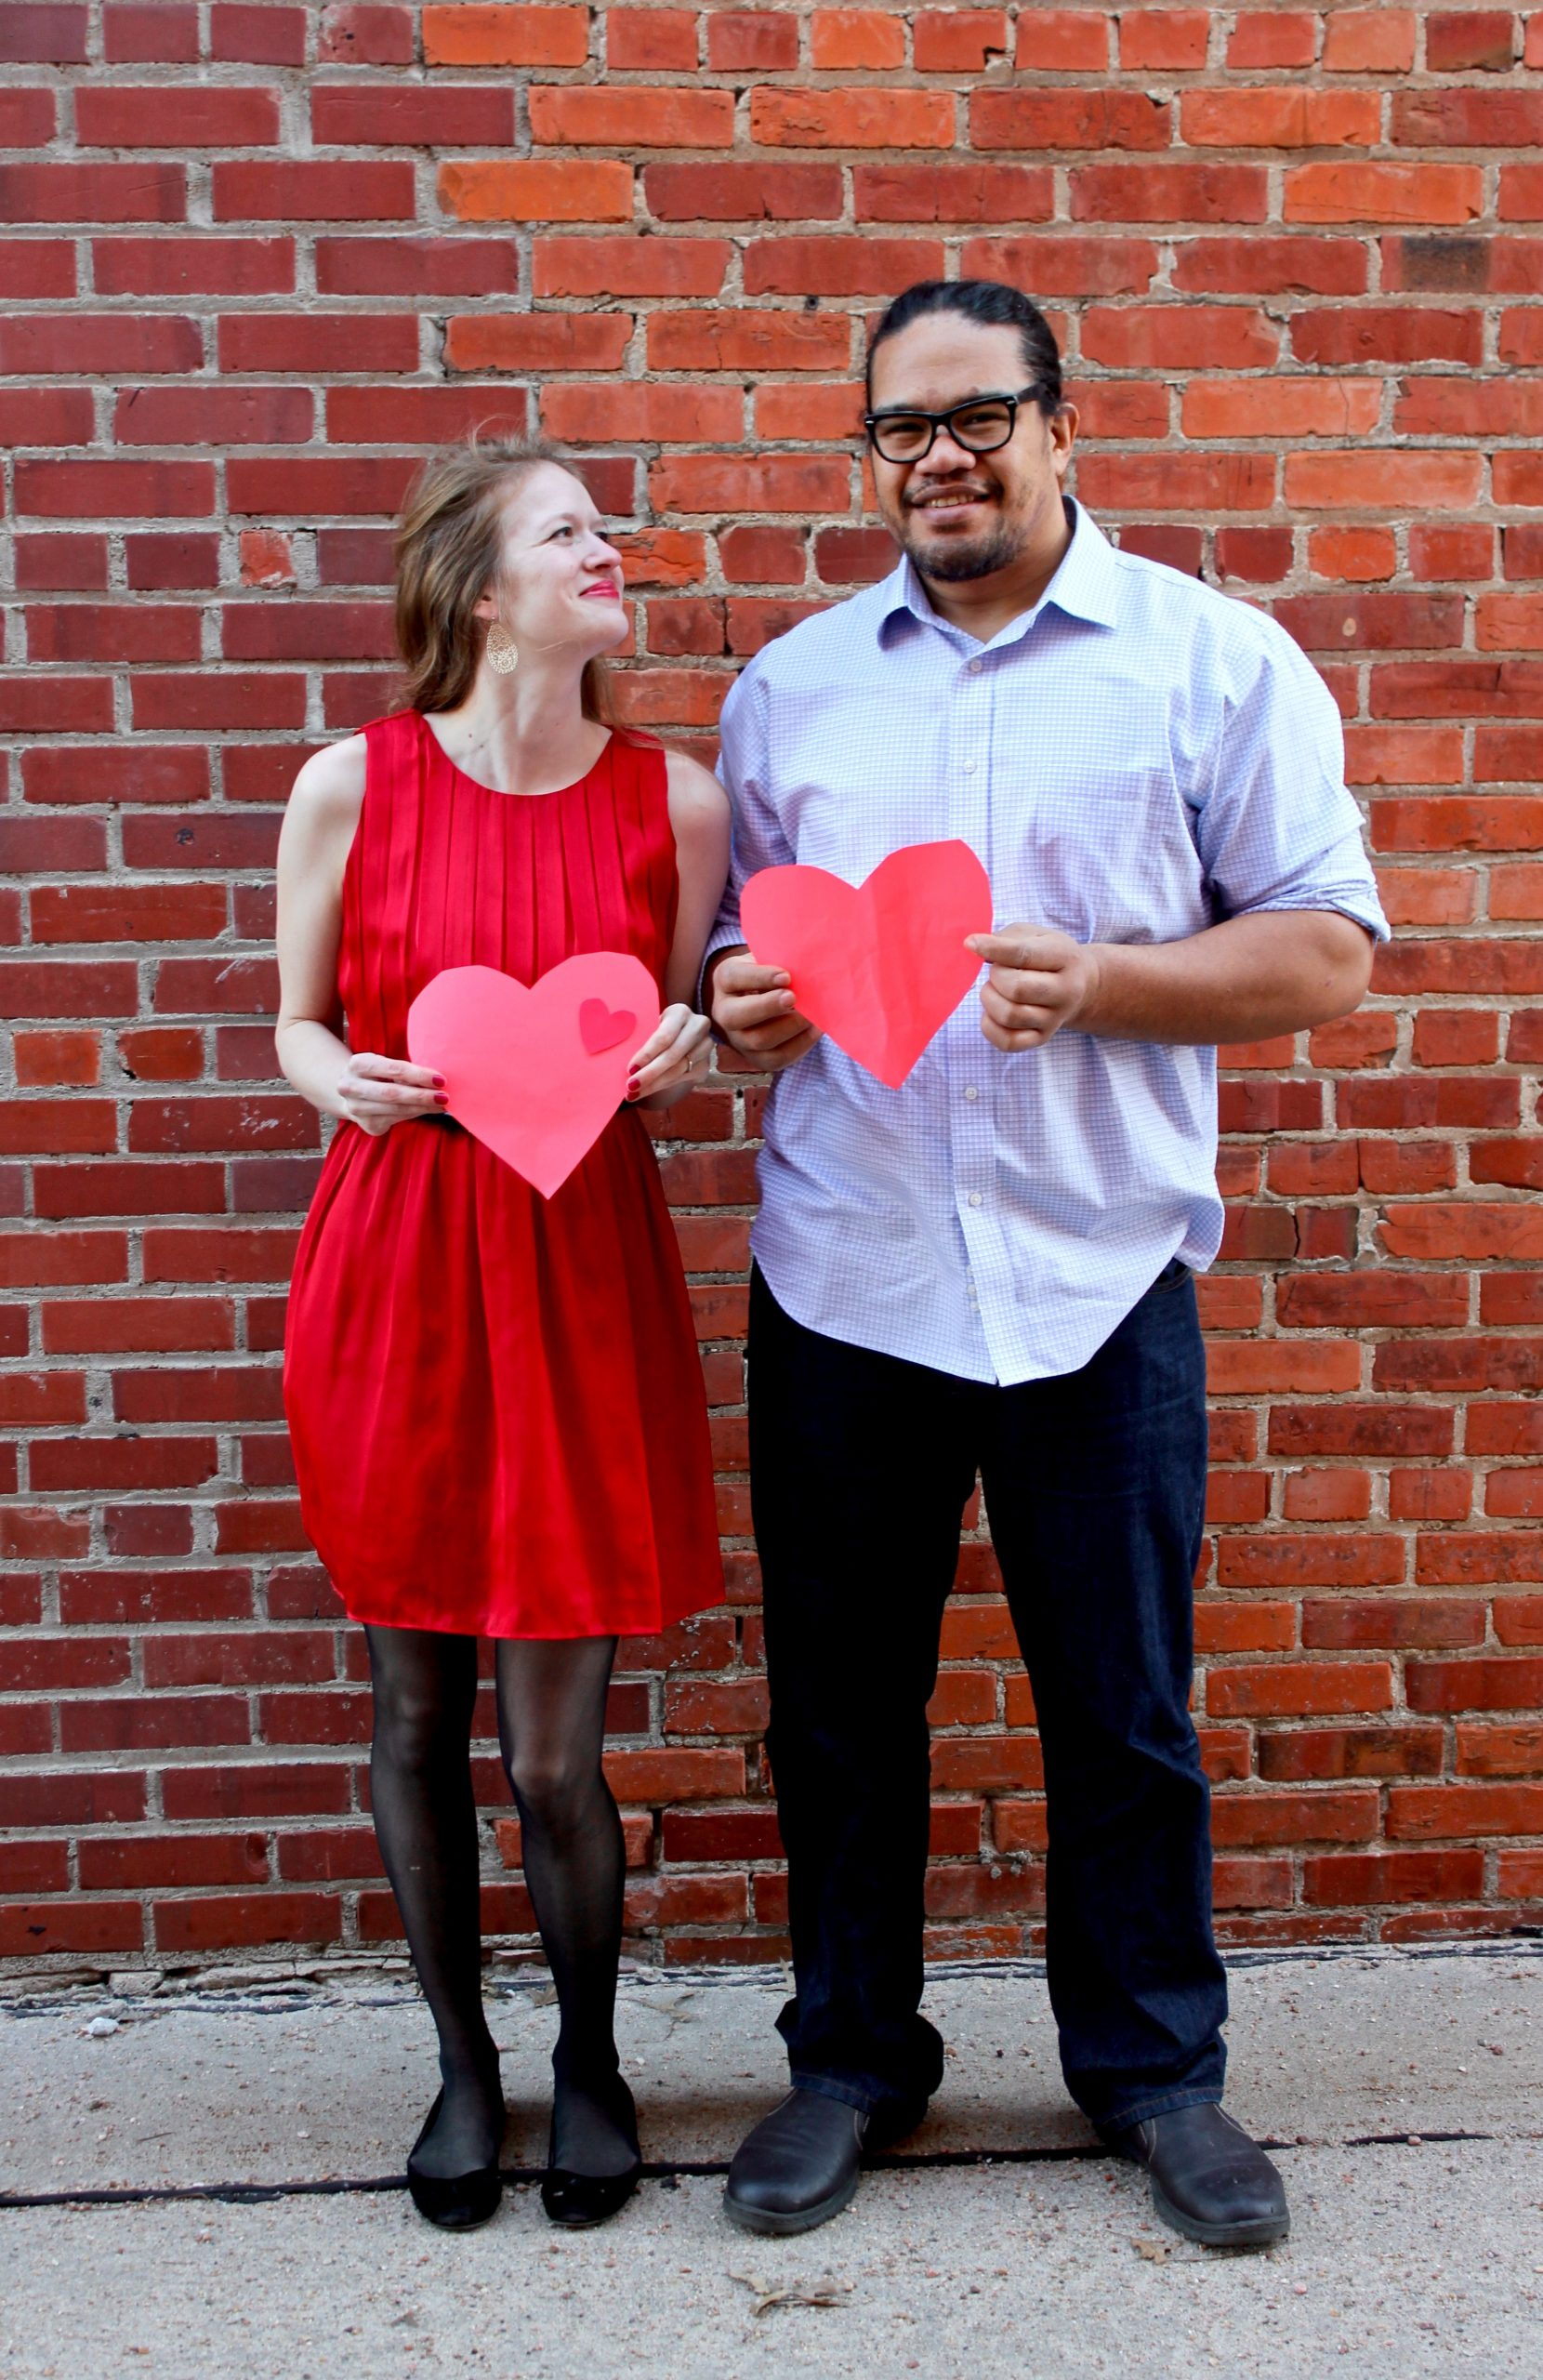 21 Unique Valentine's Day Gift Ideas for Your Husband